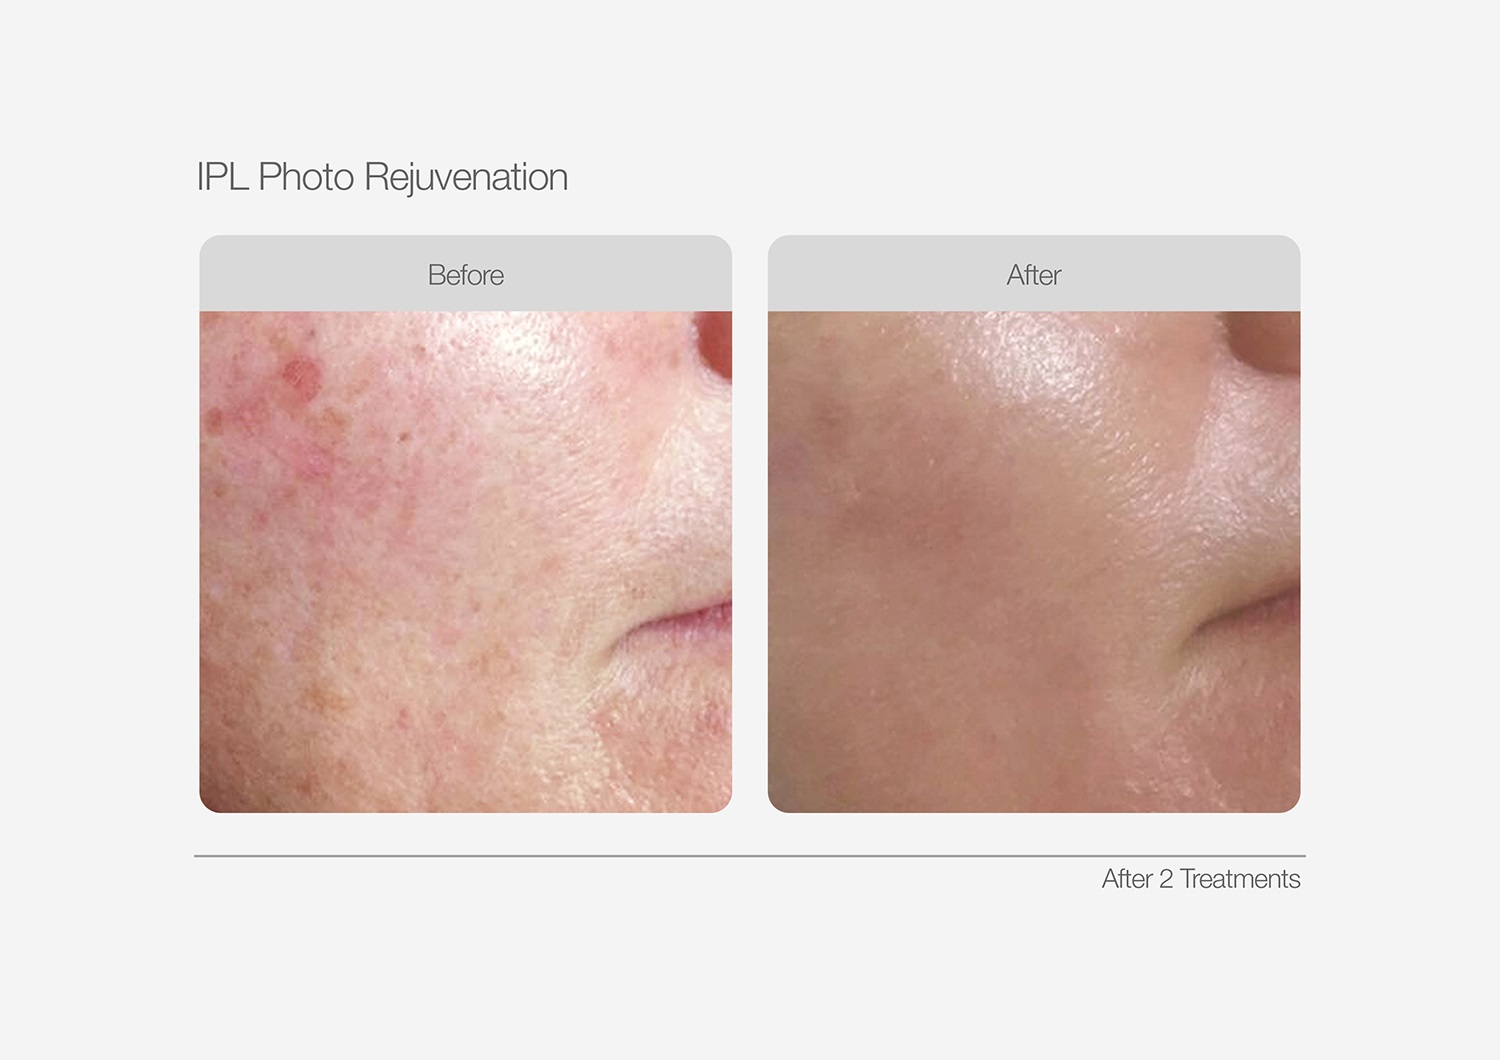 IPL-Photo-Rejuvenation-Before-After-03